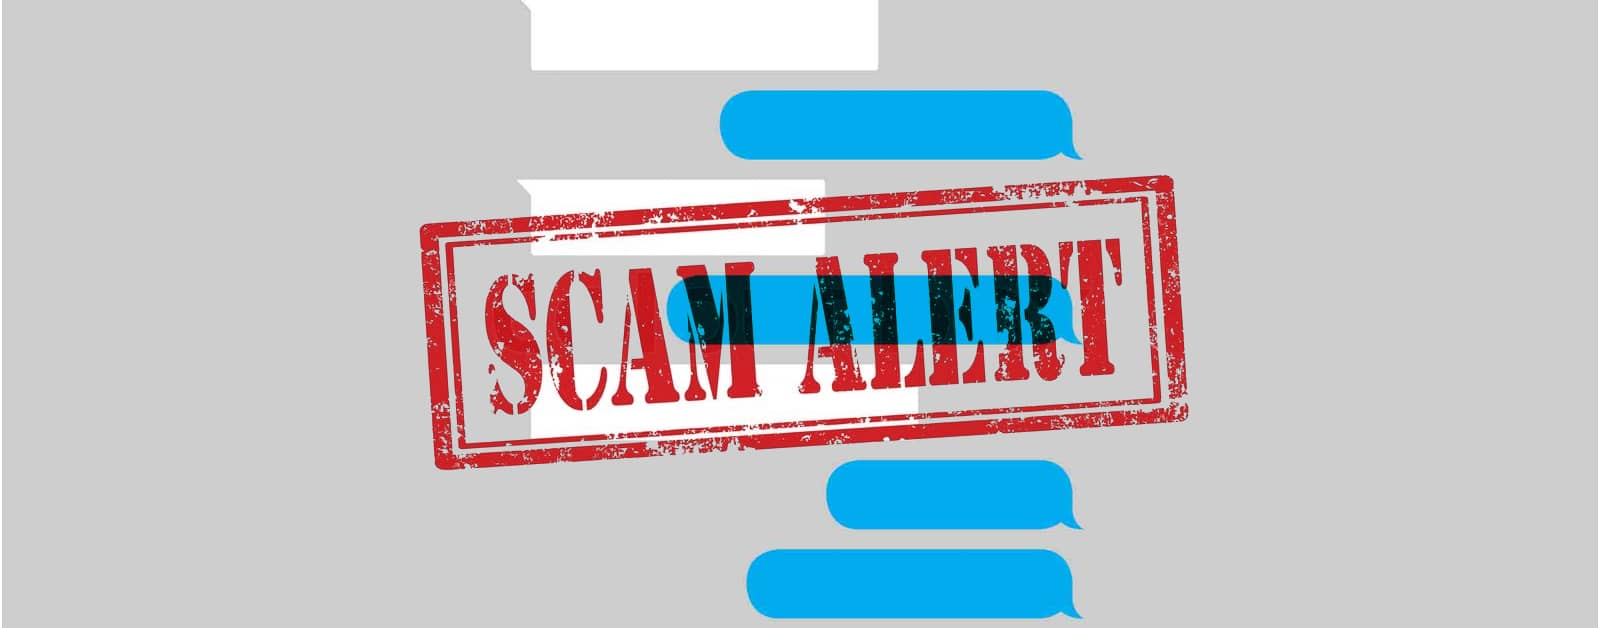 24 people pled guilty to their involvement in a years-long India phone scam.